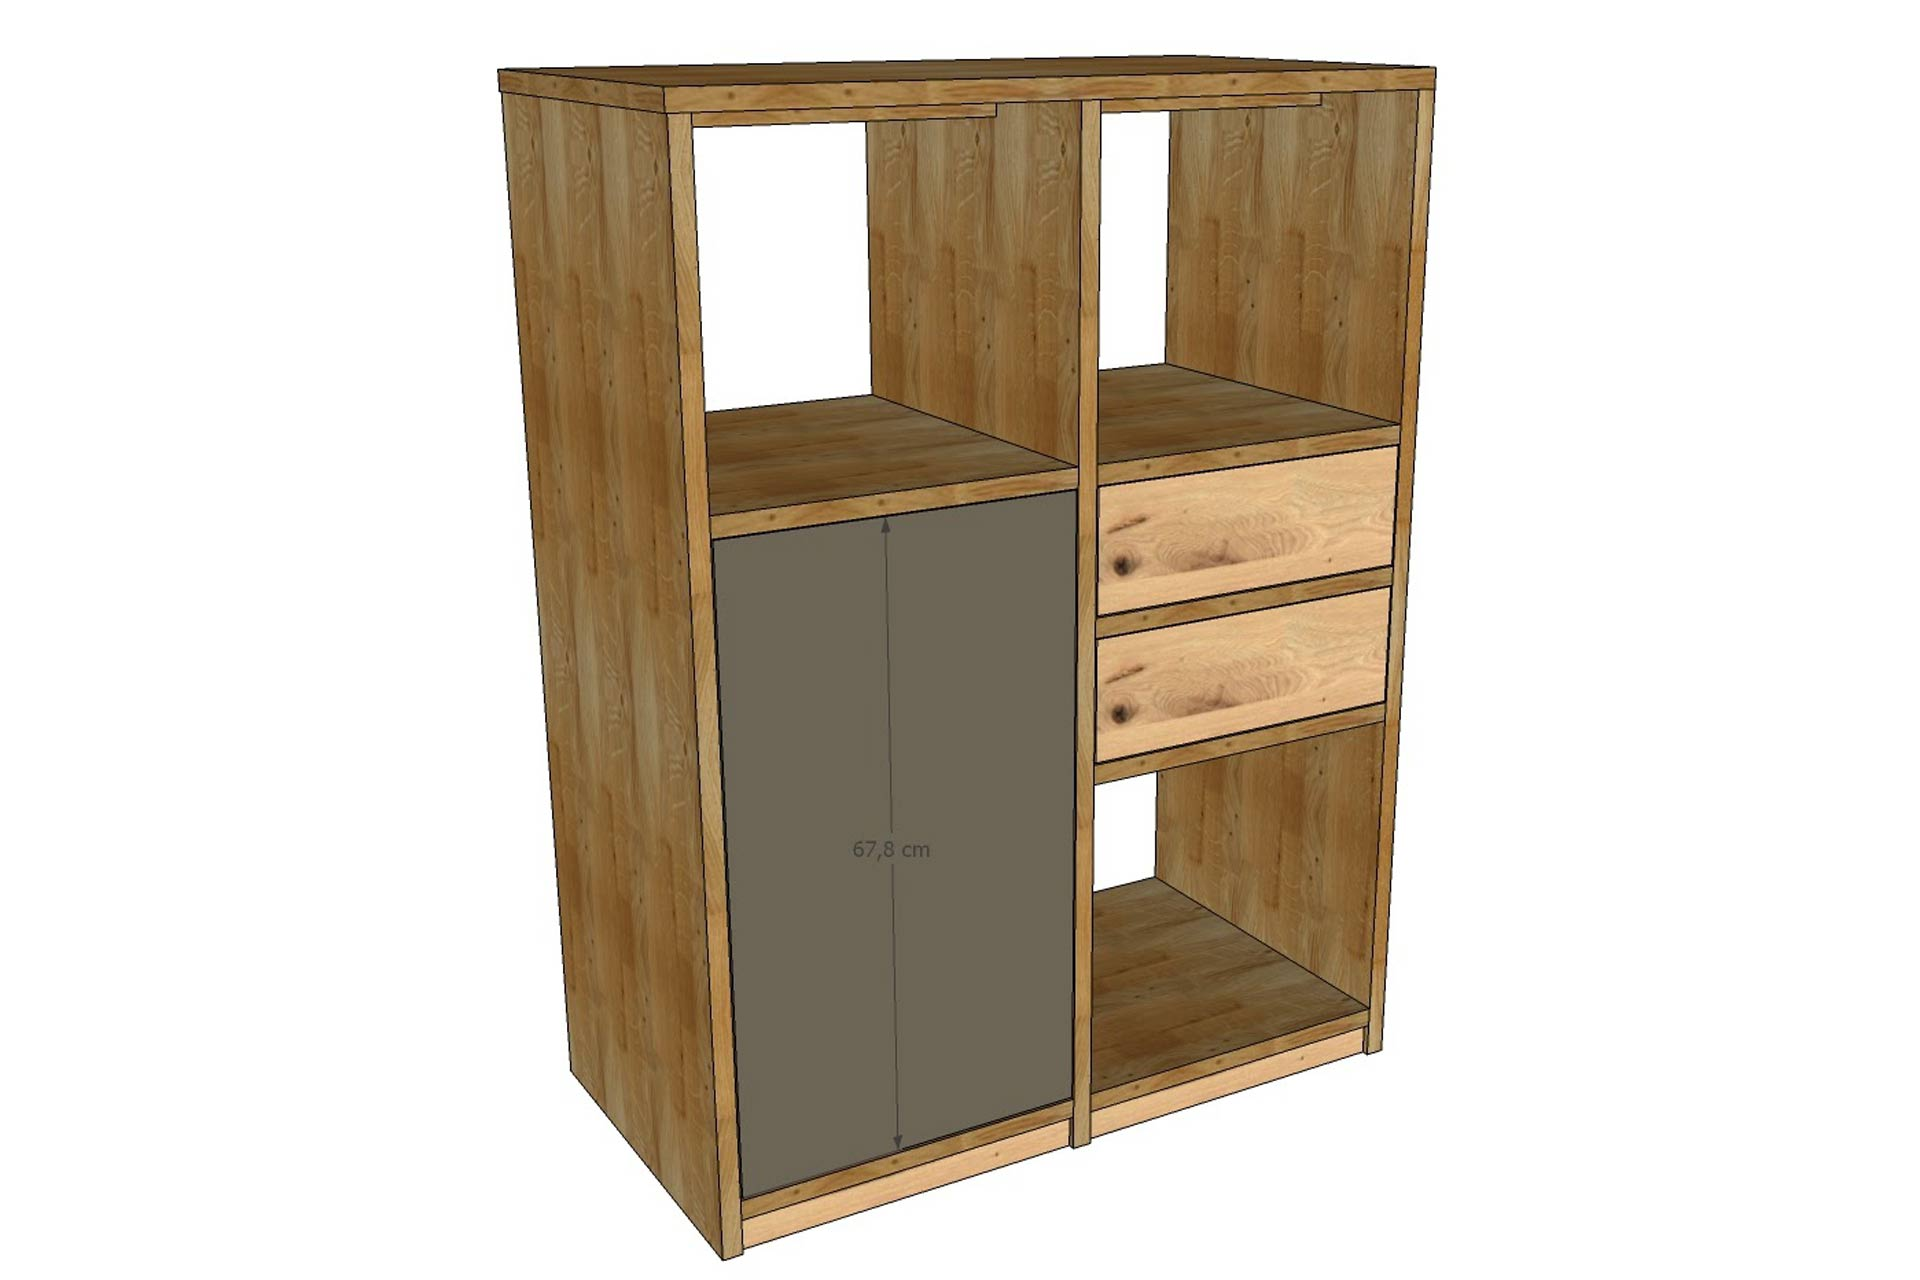 produktbild planung homeoffice schrank 1920x1280px ko control. Black Bedroom Furniture Sets. Home Design Ideas